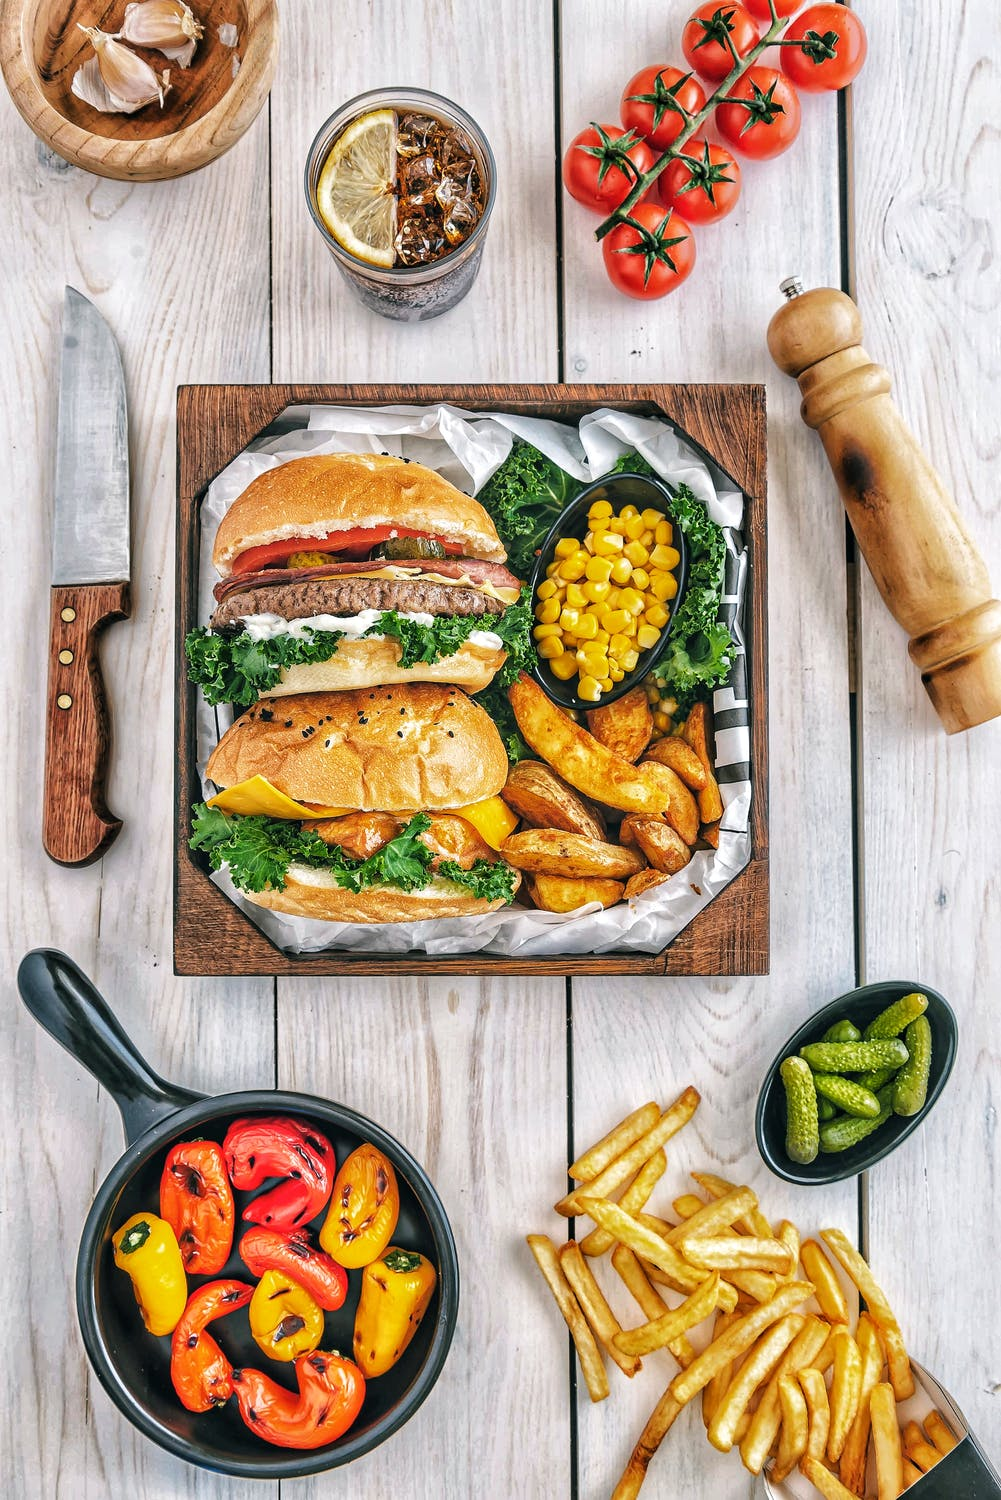 burger and delicious foods